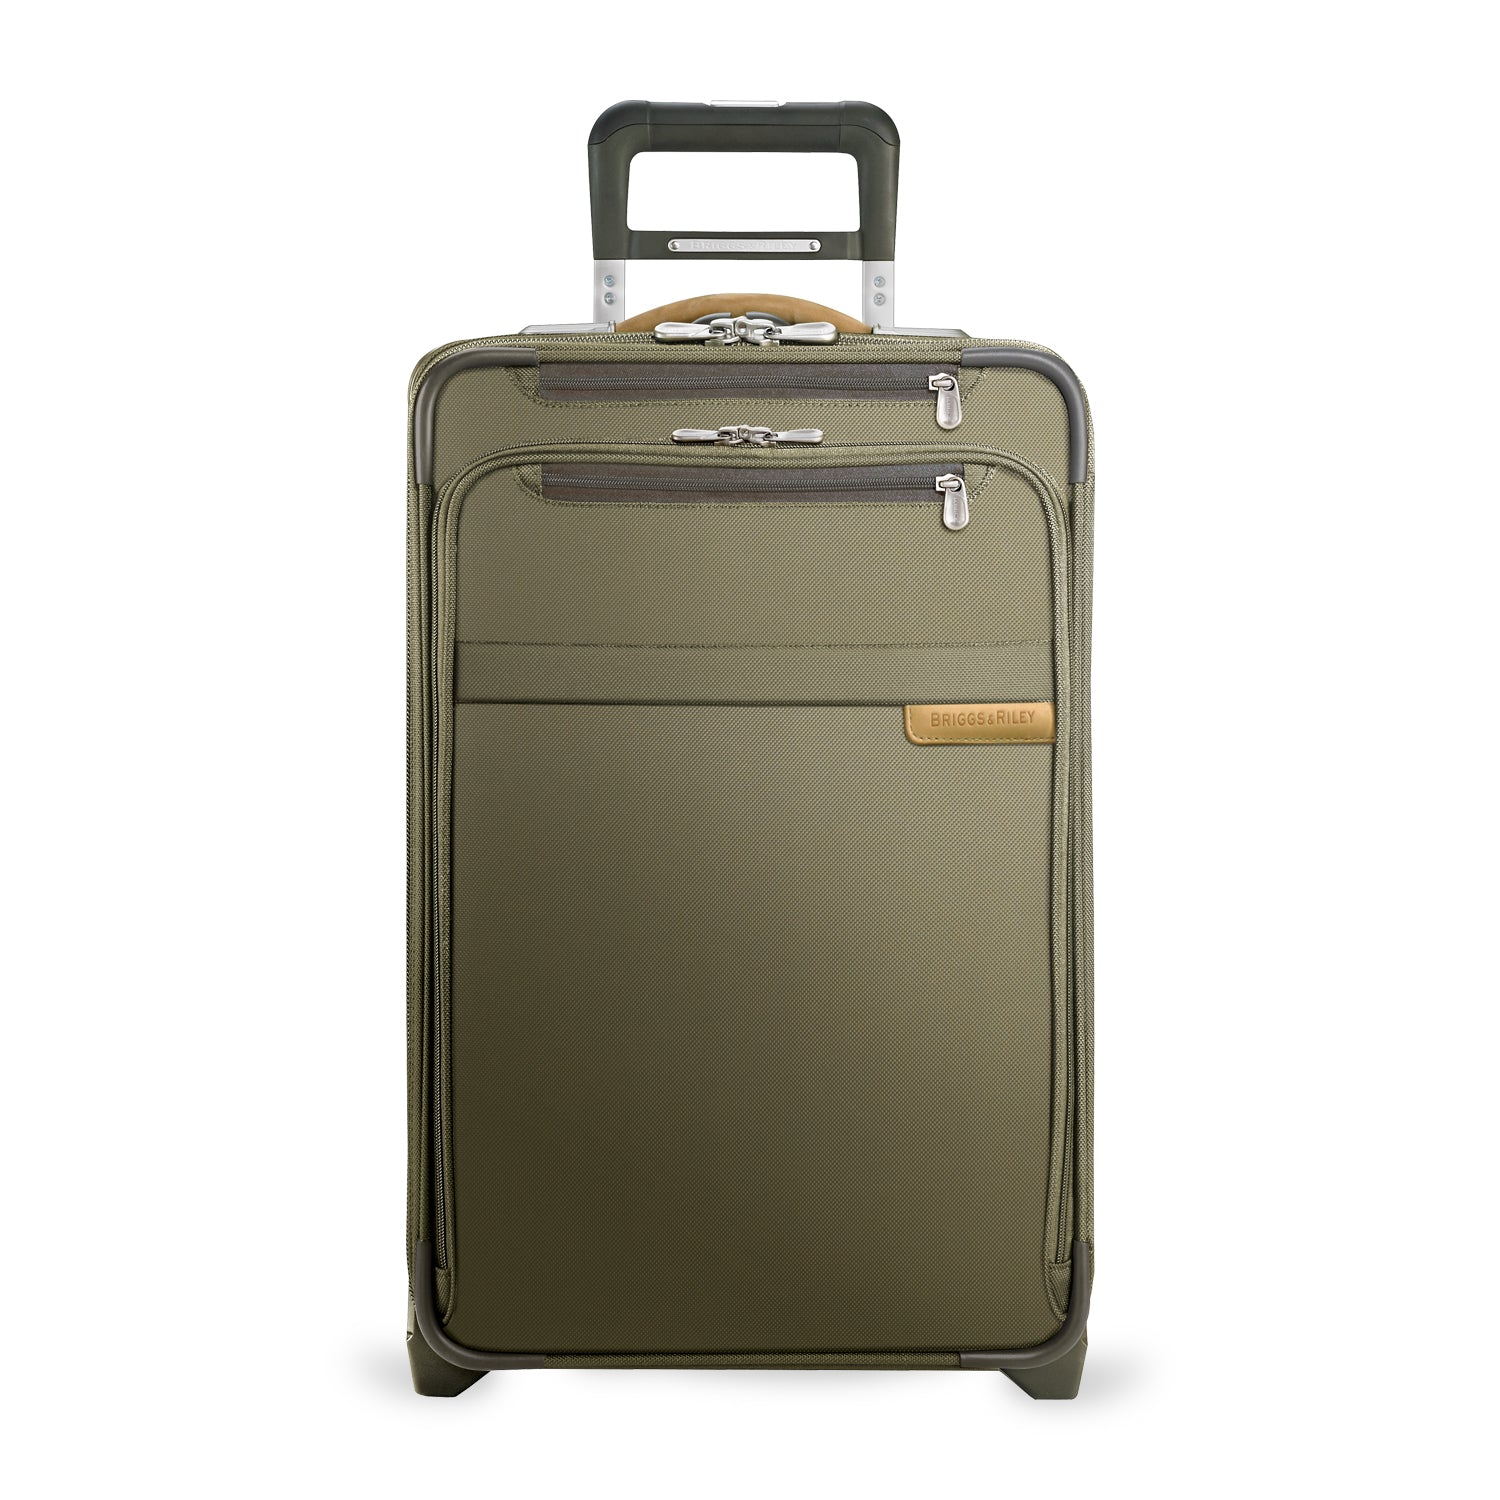 The Domestic Carry-on Expandable Upright travel product recommended by Sean Potter on Lifney.